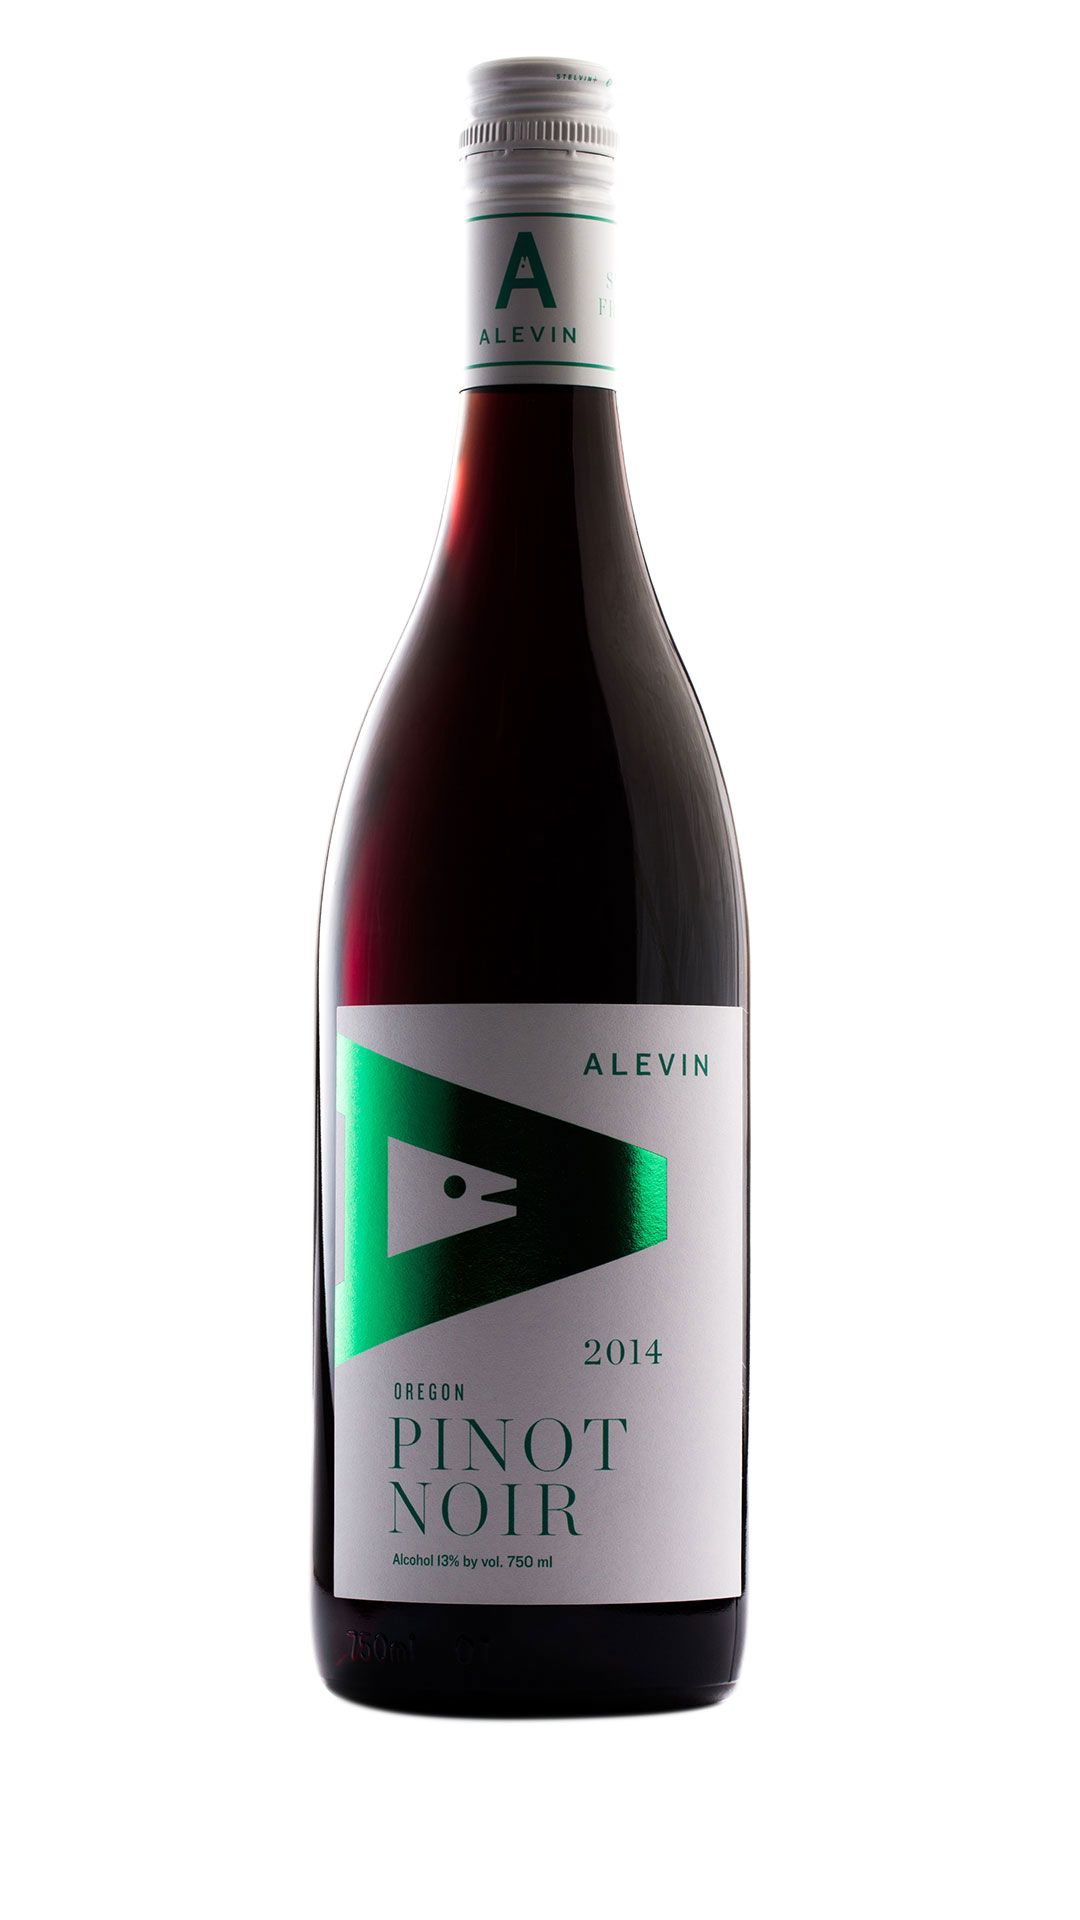 2014 Pinot Noir - Our 2014 Pinot Noir is supple, with hints of chocolate and dark fruit; barrel-aged to create a rich, full finish.